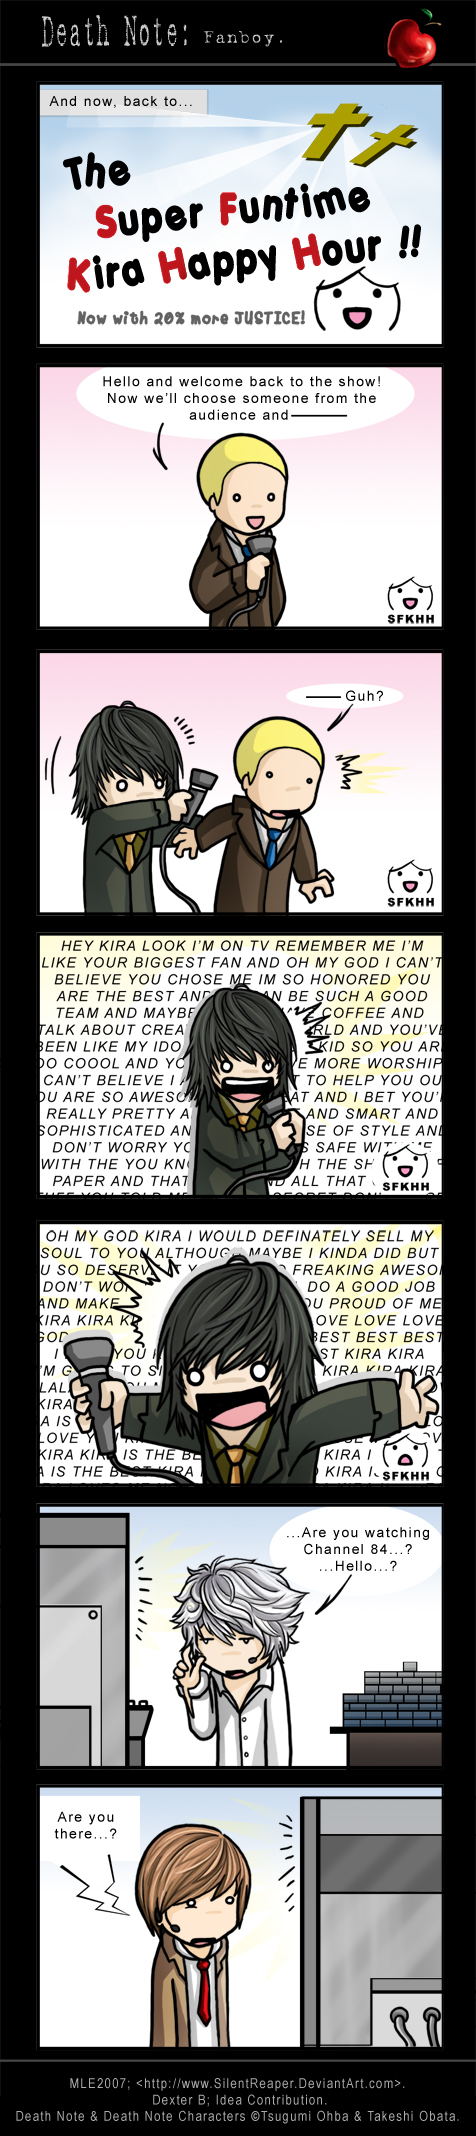 Death_Note__Fanboy__by_SilentReaper.jpg